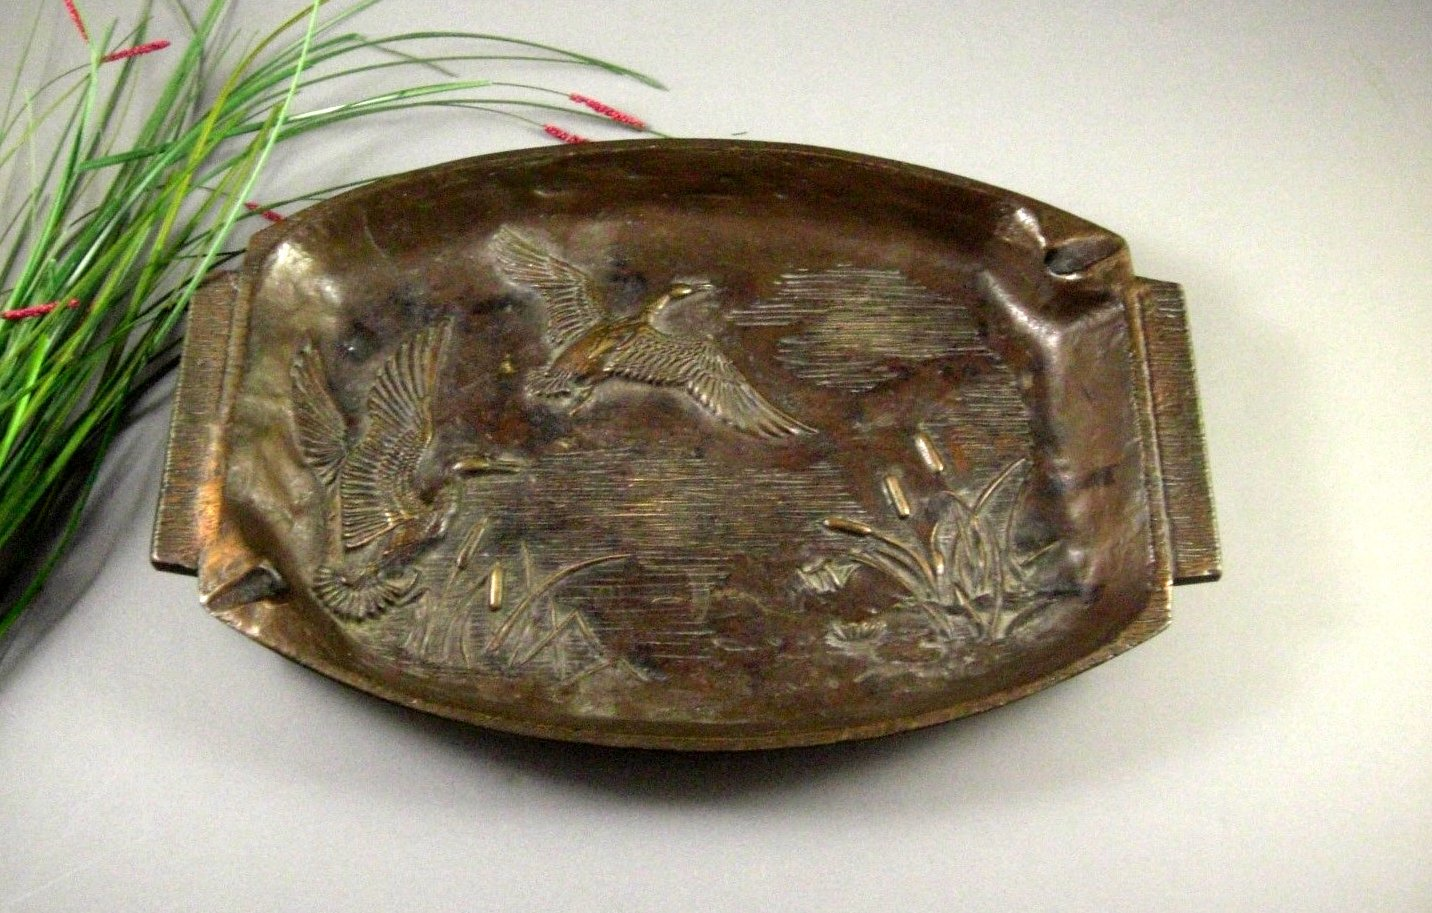 LARGE Solid Bronze Tray Ashtray Organic Prairie Style dated 1959